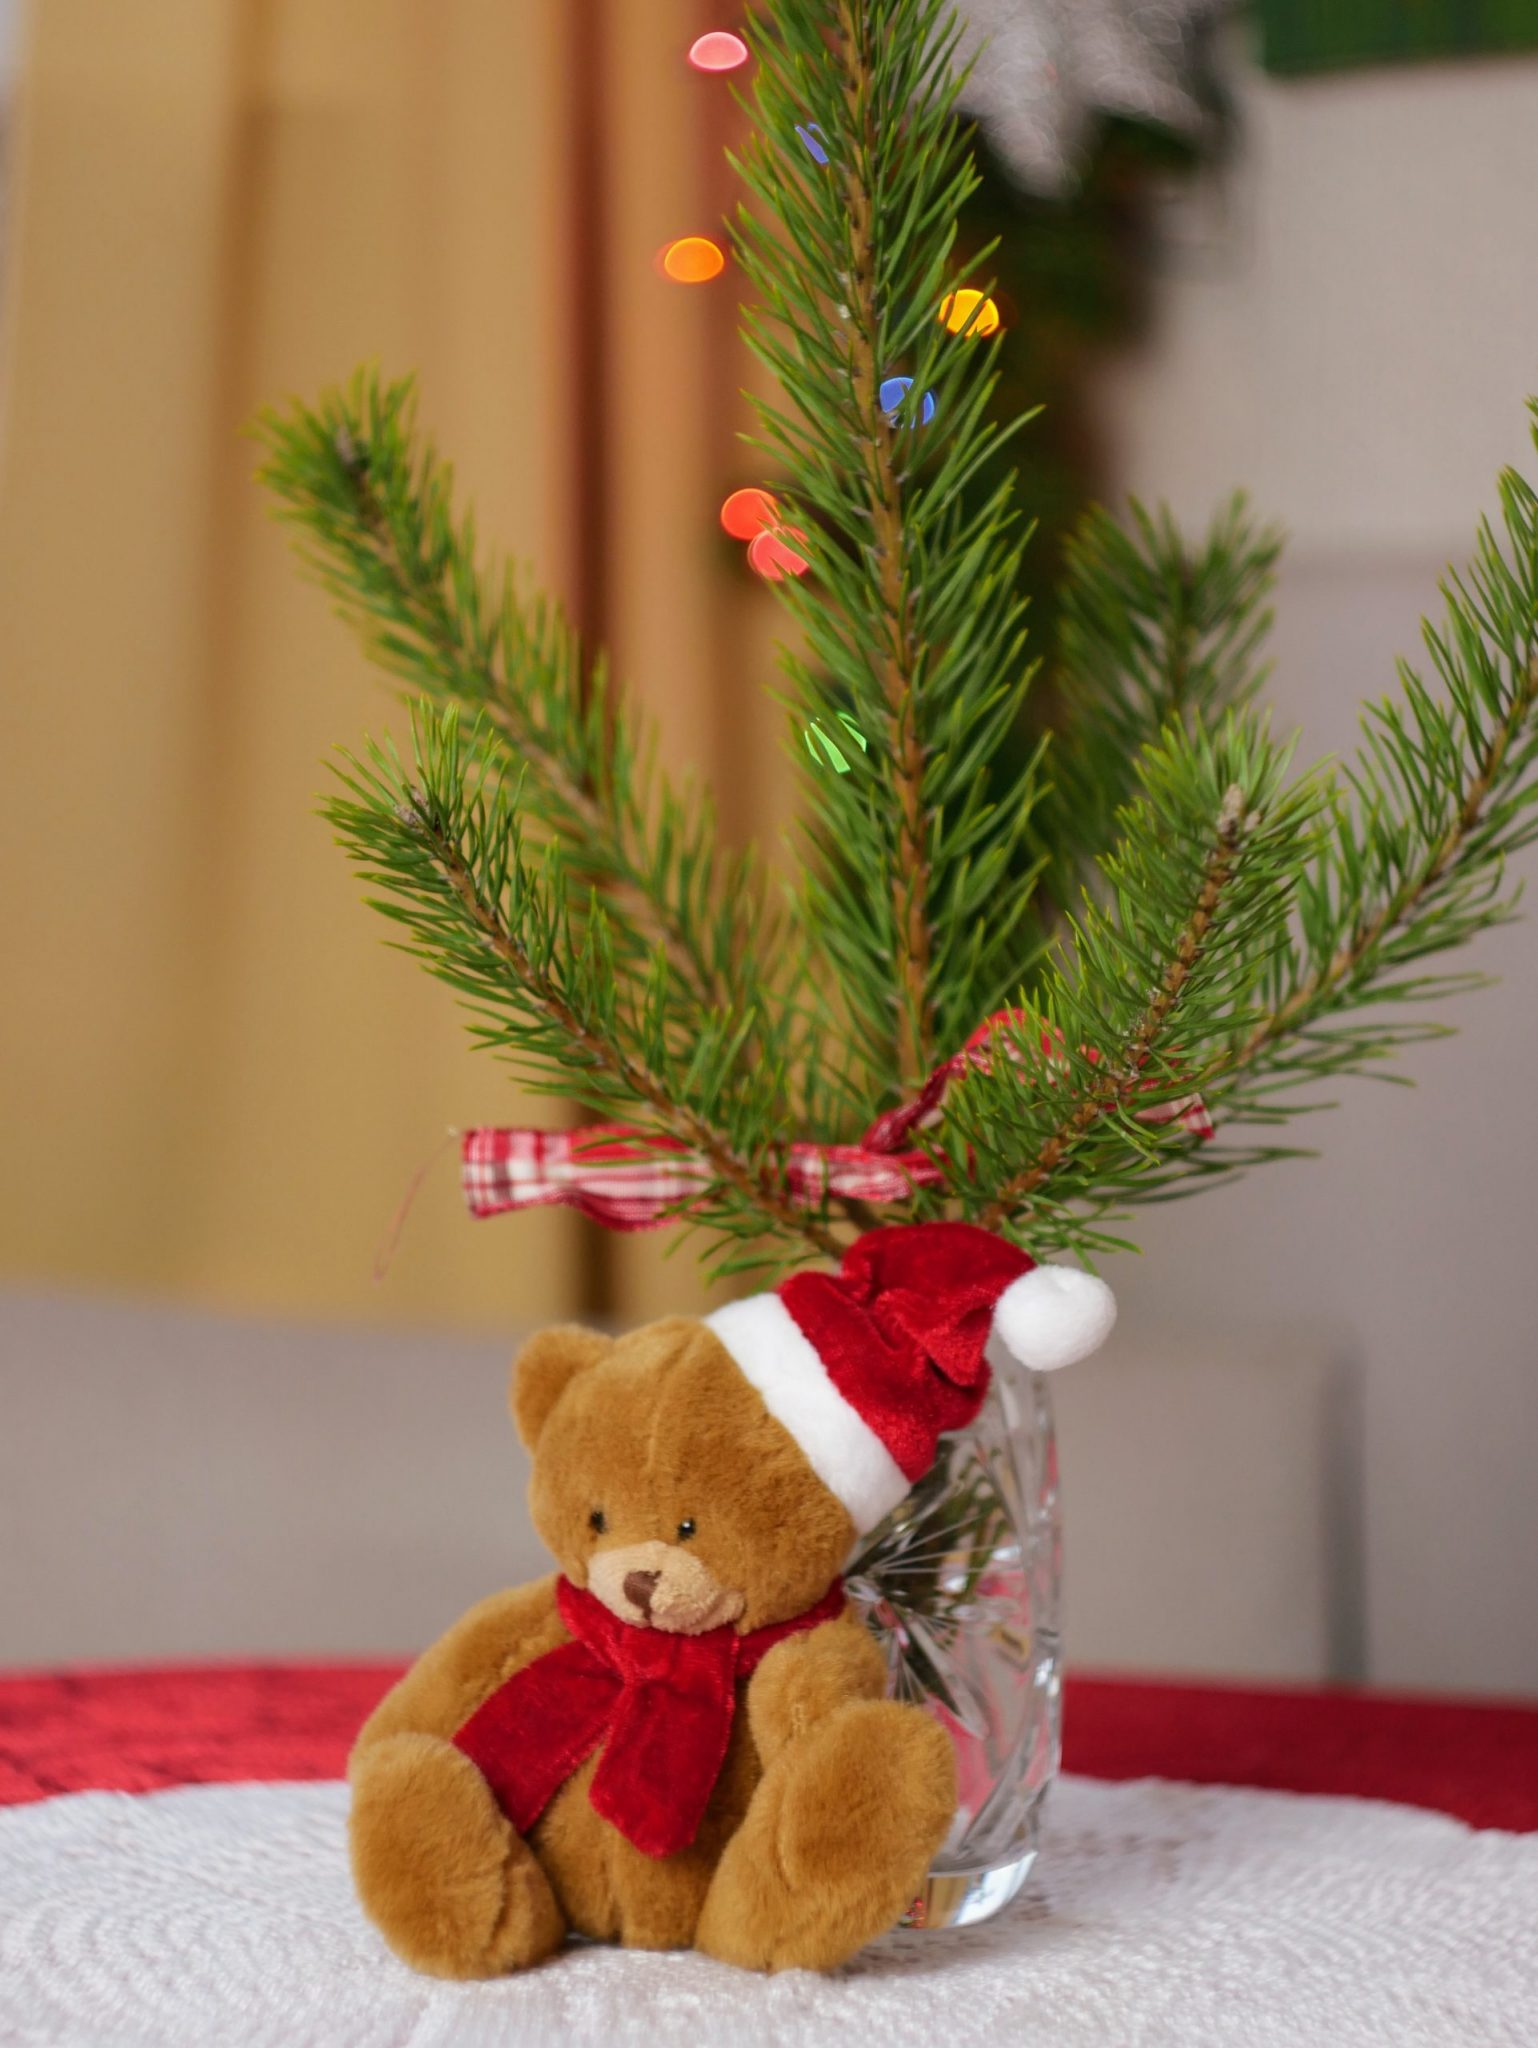 A teddy bear in front of a Christmas Tree branch